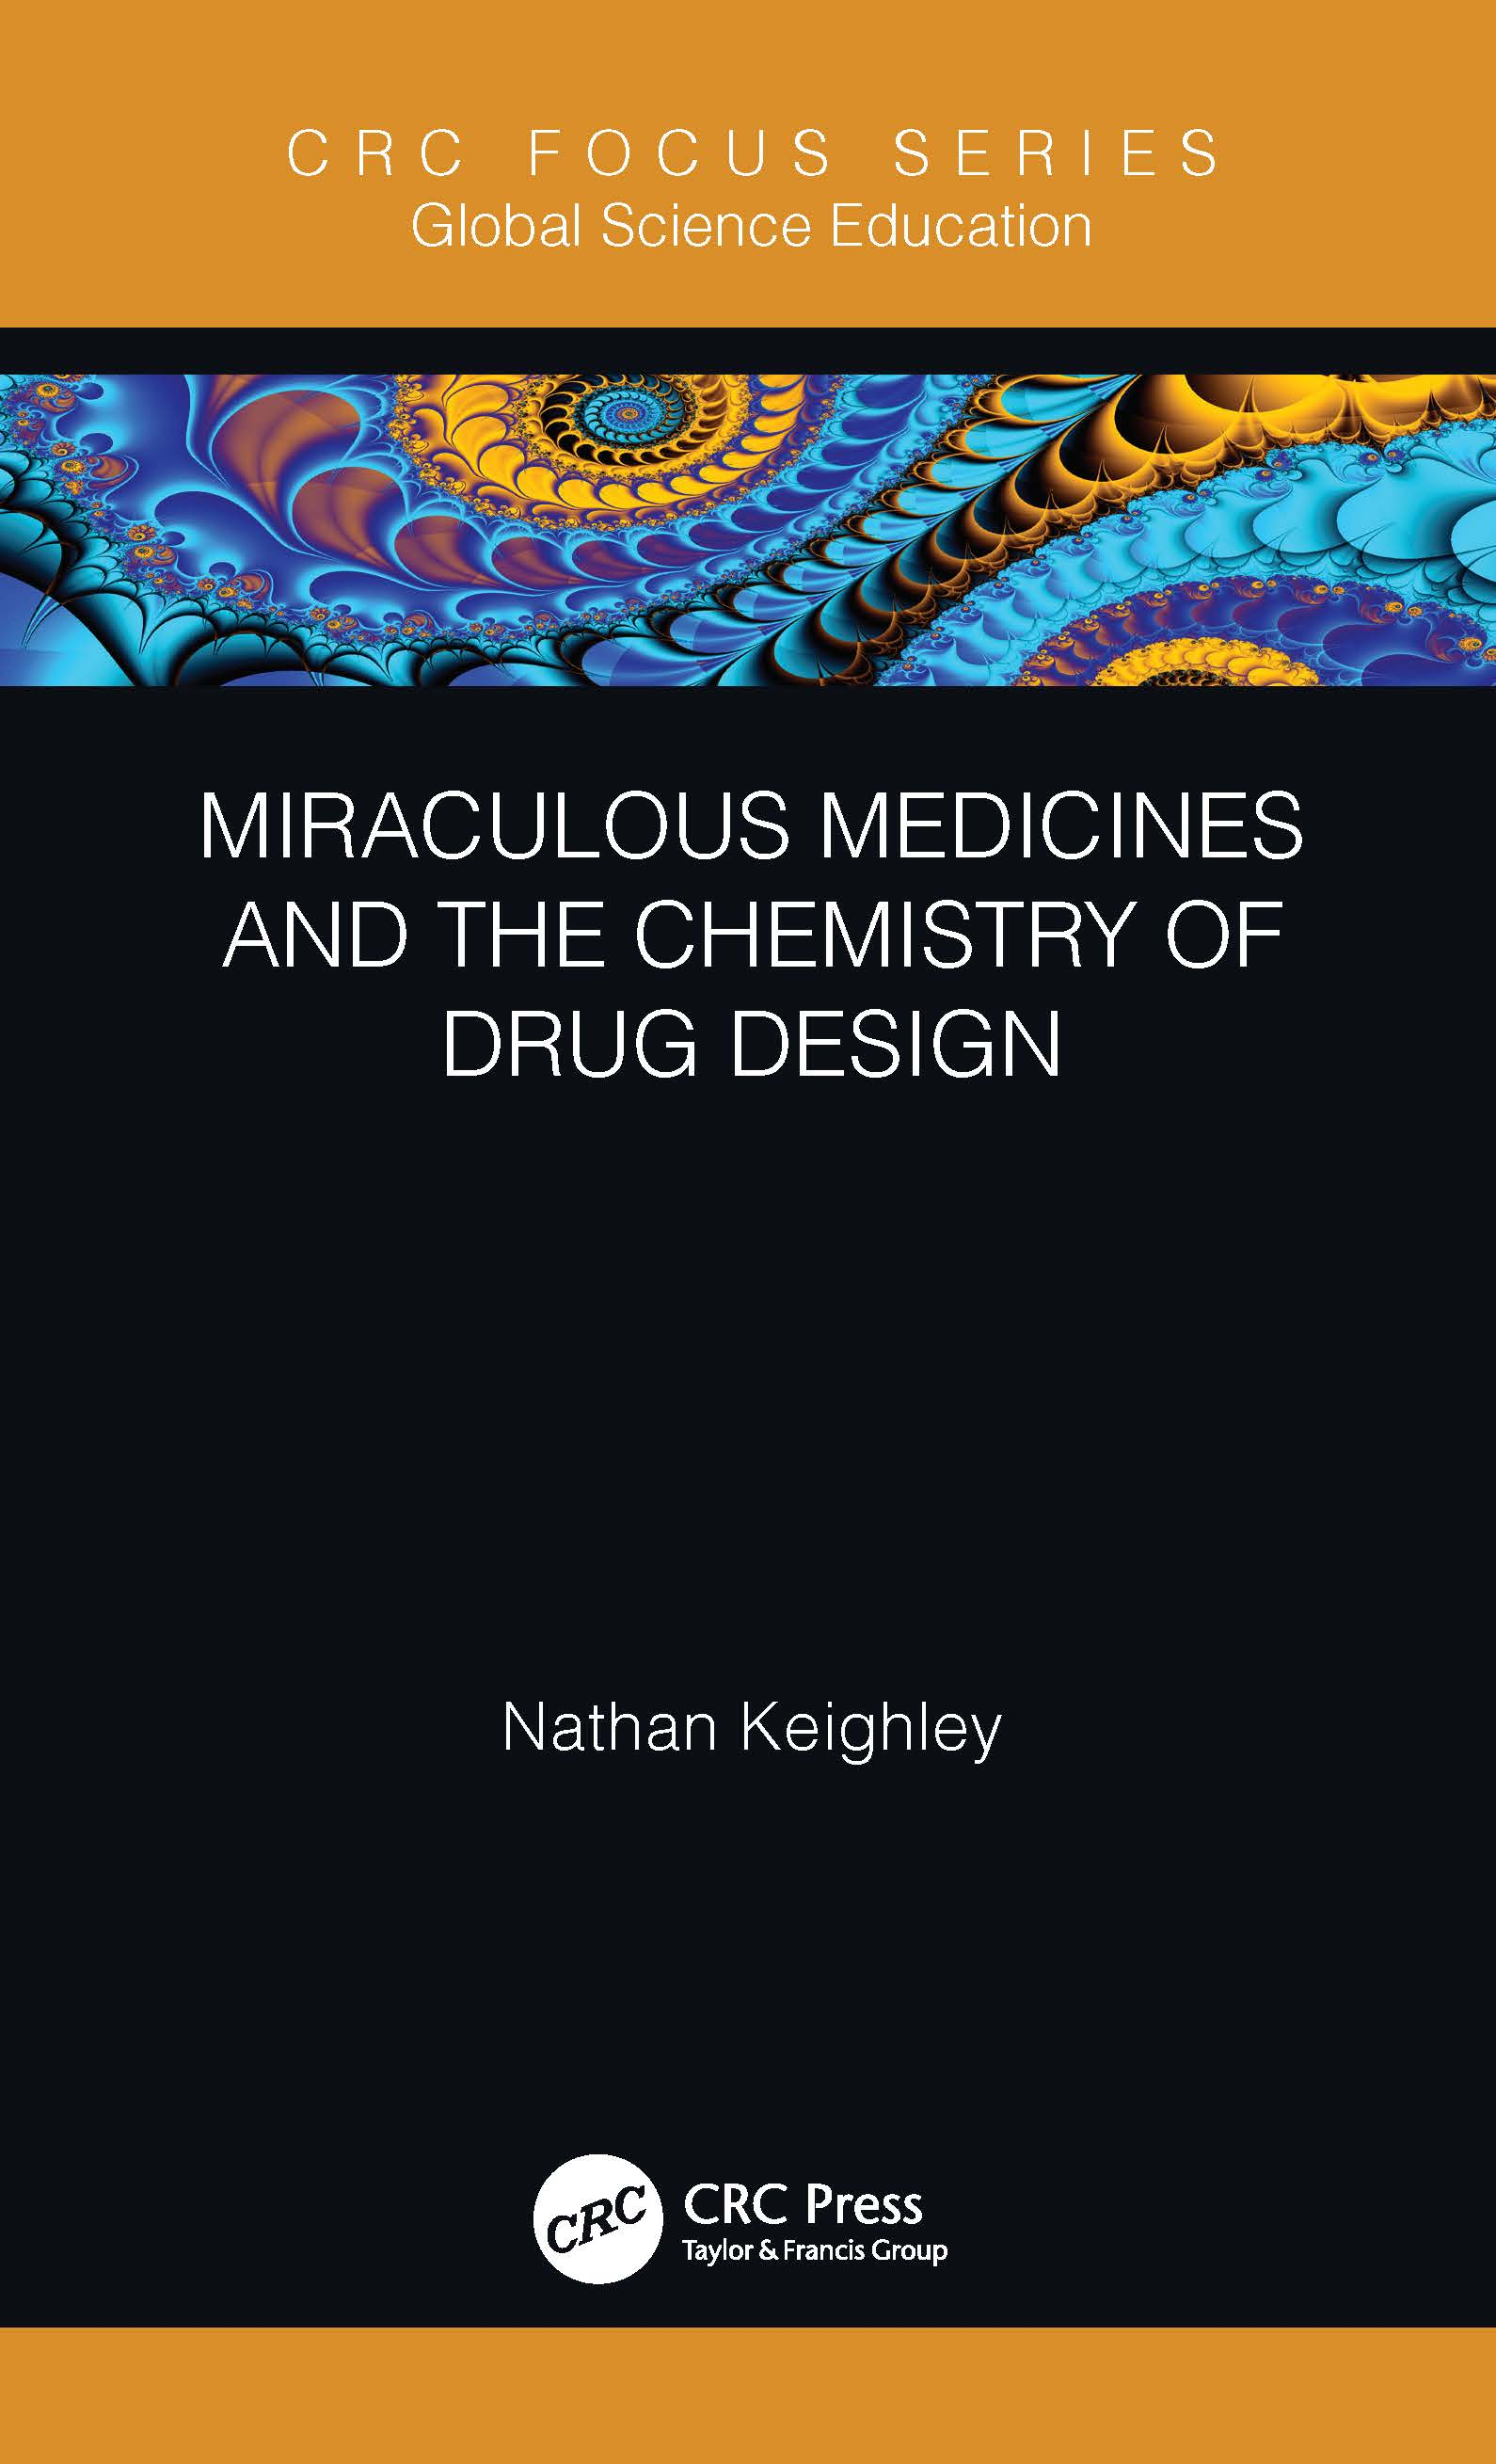 Miraculous Medicines and the Chemistry of Drug Design